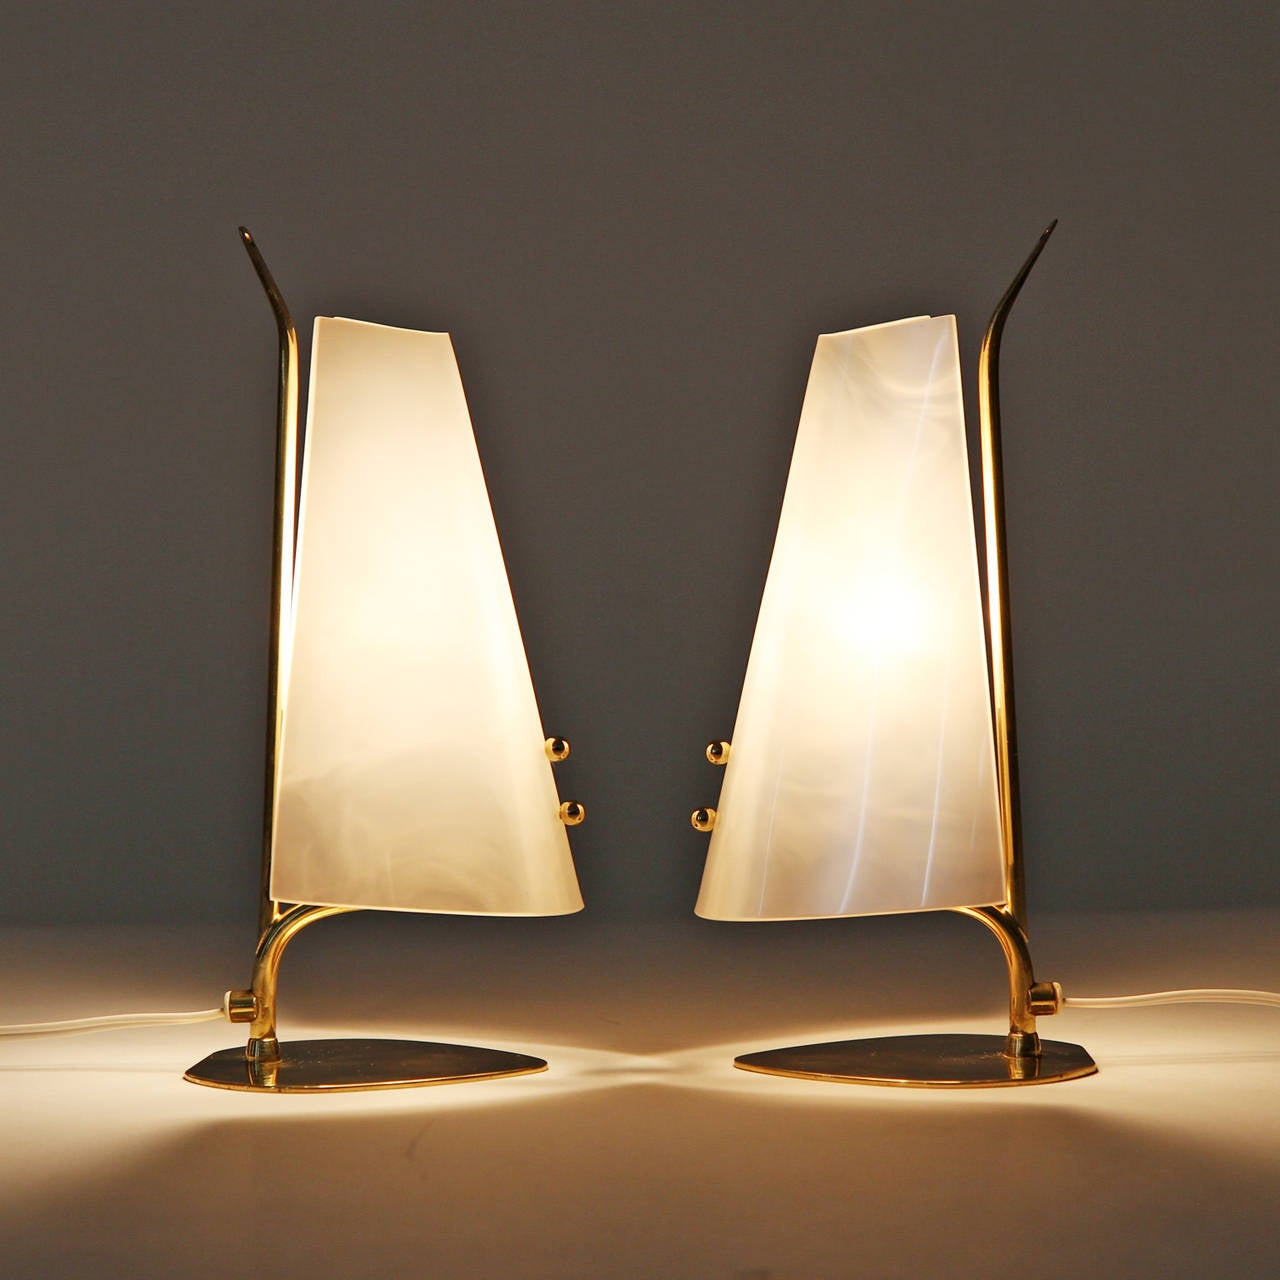 Unique lamps for sale - Unique Lamps For Sale Unique Pair Of Brass And Perspex Table Lamps For Sale At